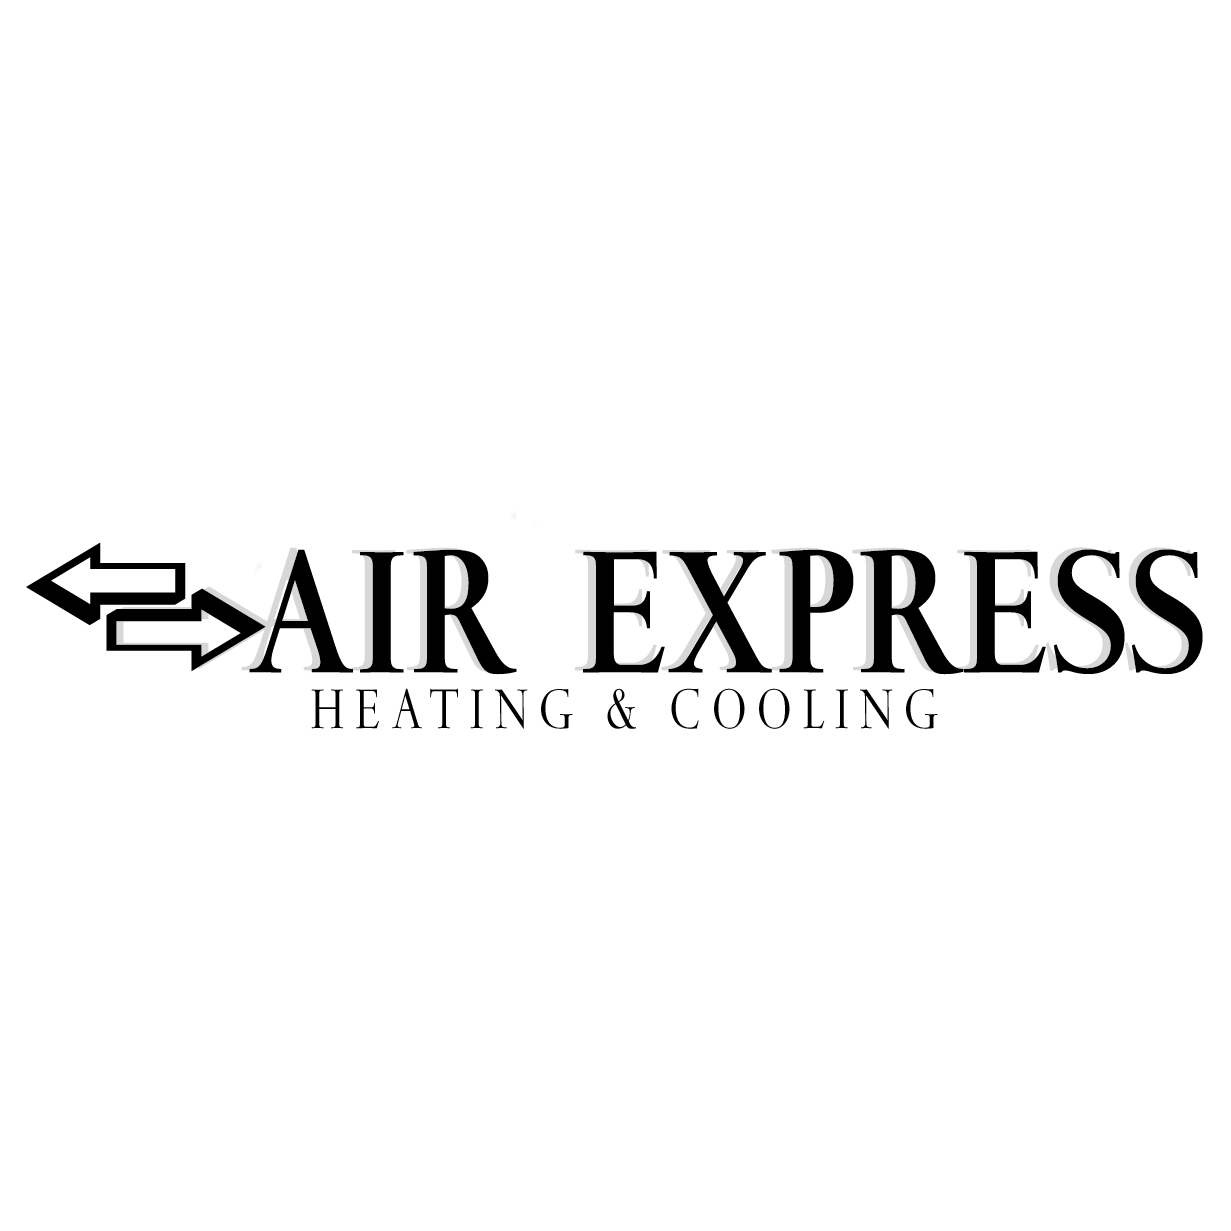 Air Express Heating & Cooling - Brooklyn Center, MN - Heating & Air Conditioning